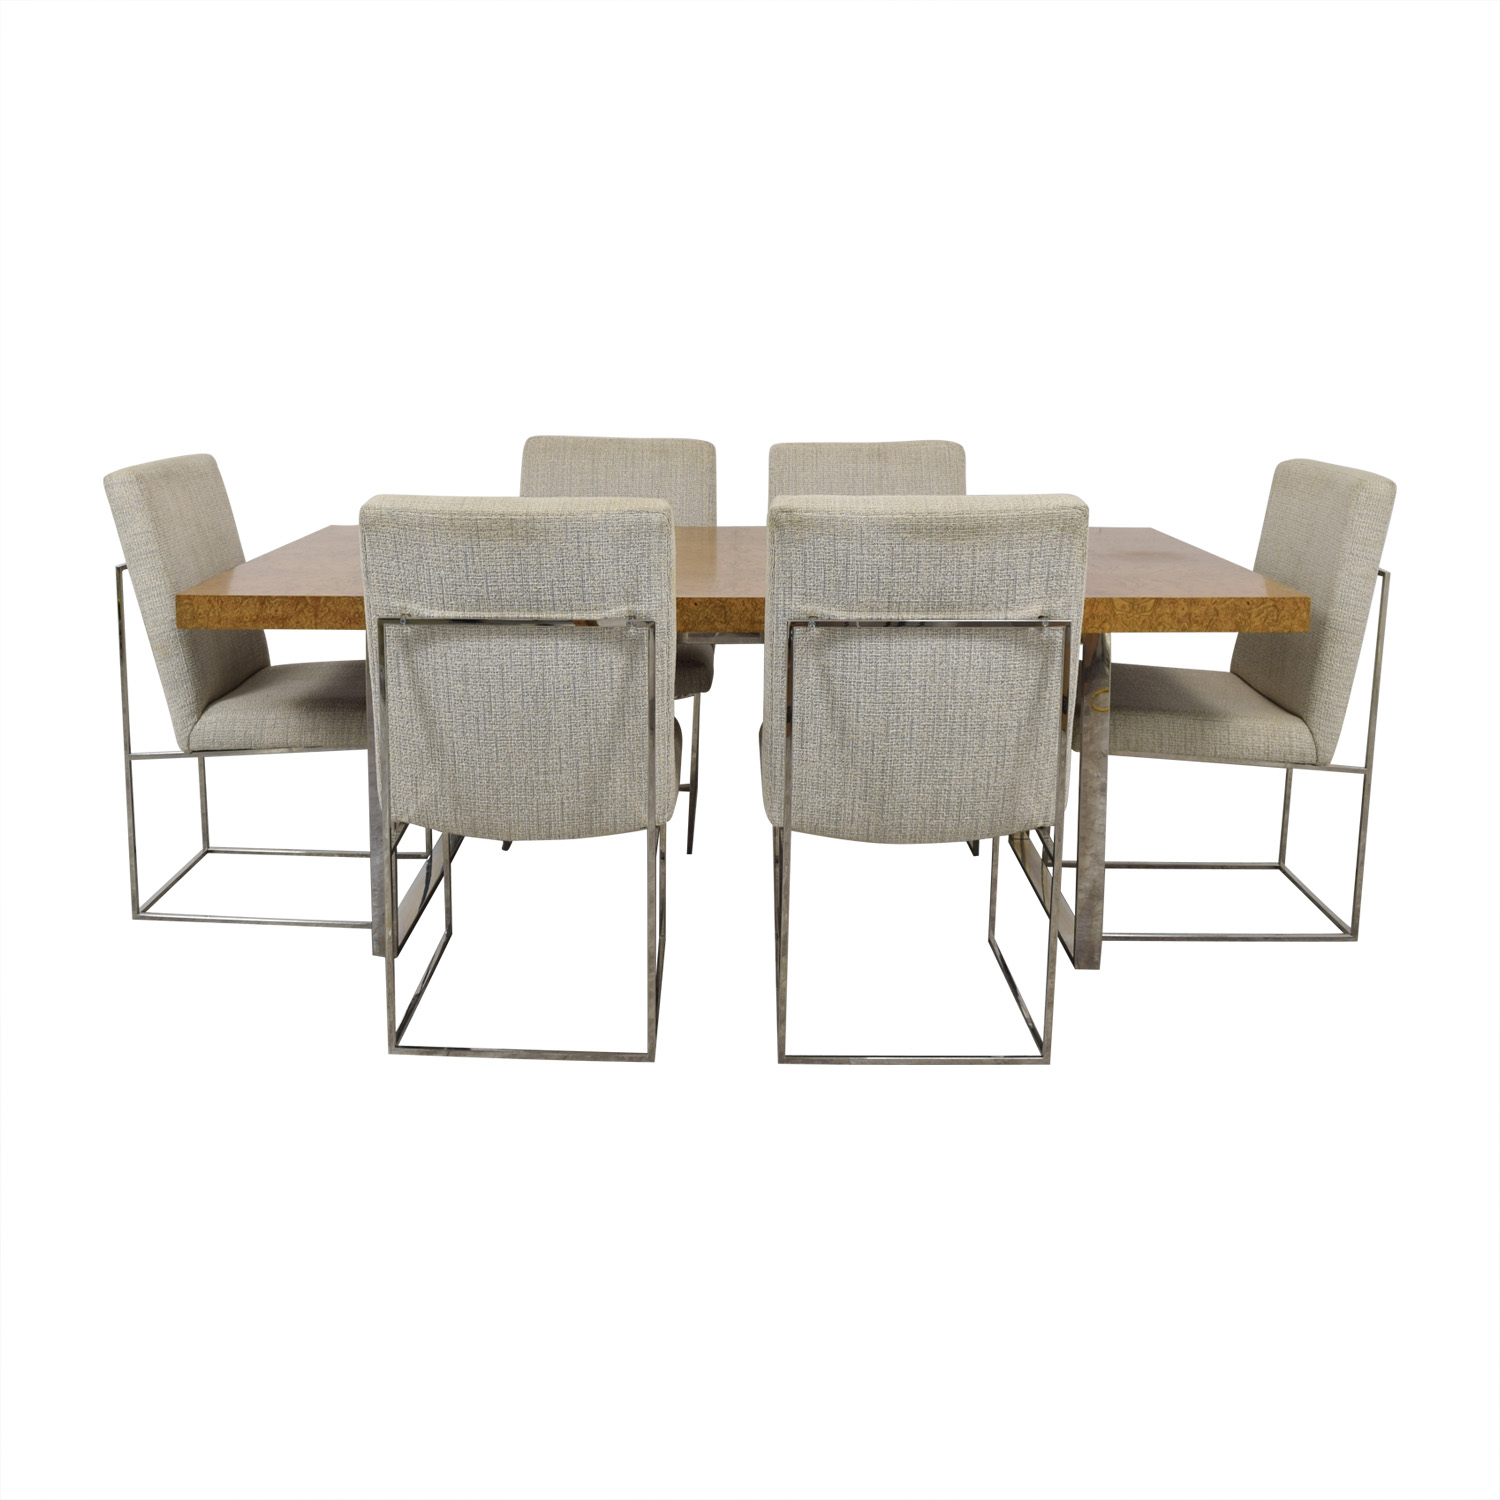 shop Thayer Coggin Thayer Coggin Burl Dining Set with Design Classic Dining Chair by Milo Baughman online